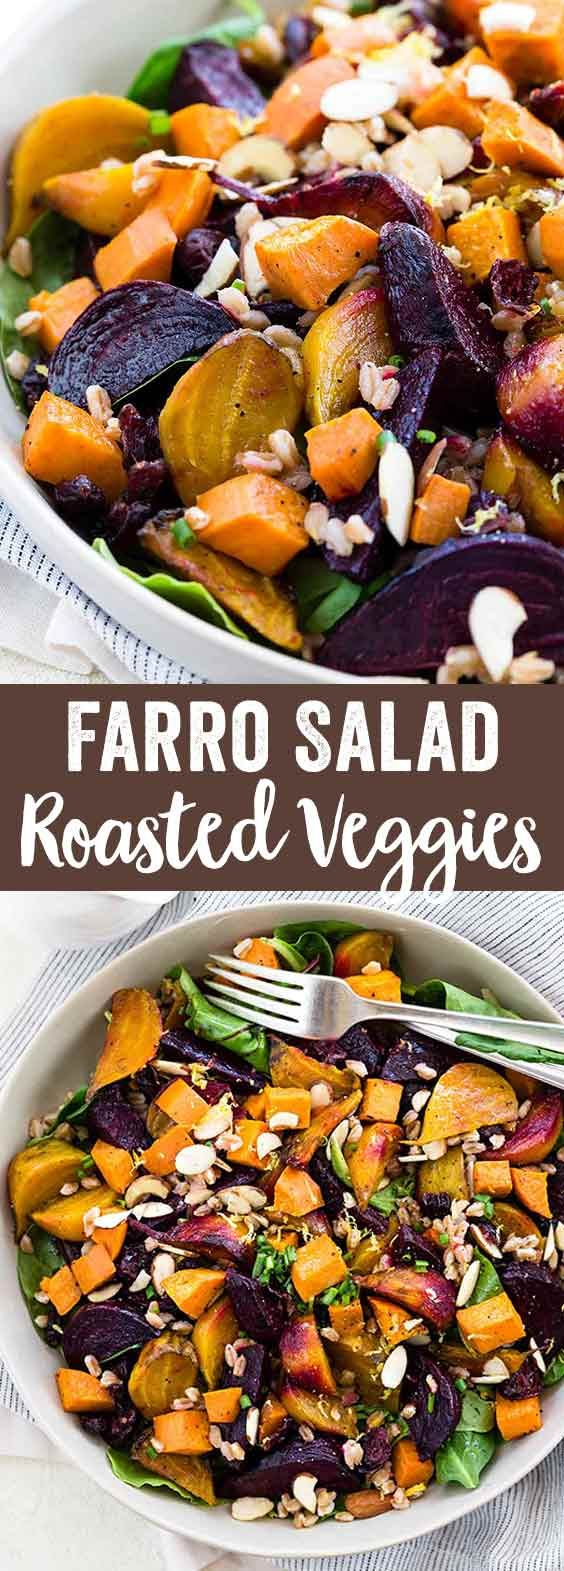 Farro salad with seasonal roasted root vegetables is a hearty and healthy dish. Tender beets, sweet potatoes, greens, and whole farro grains tossed in a fresh lemon garlic dressing. via @foodiegavin